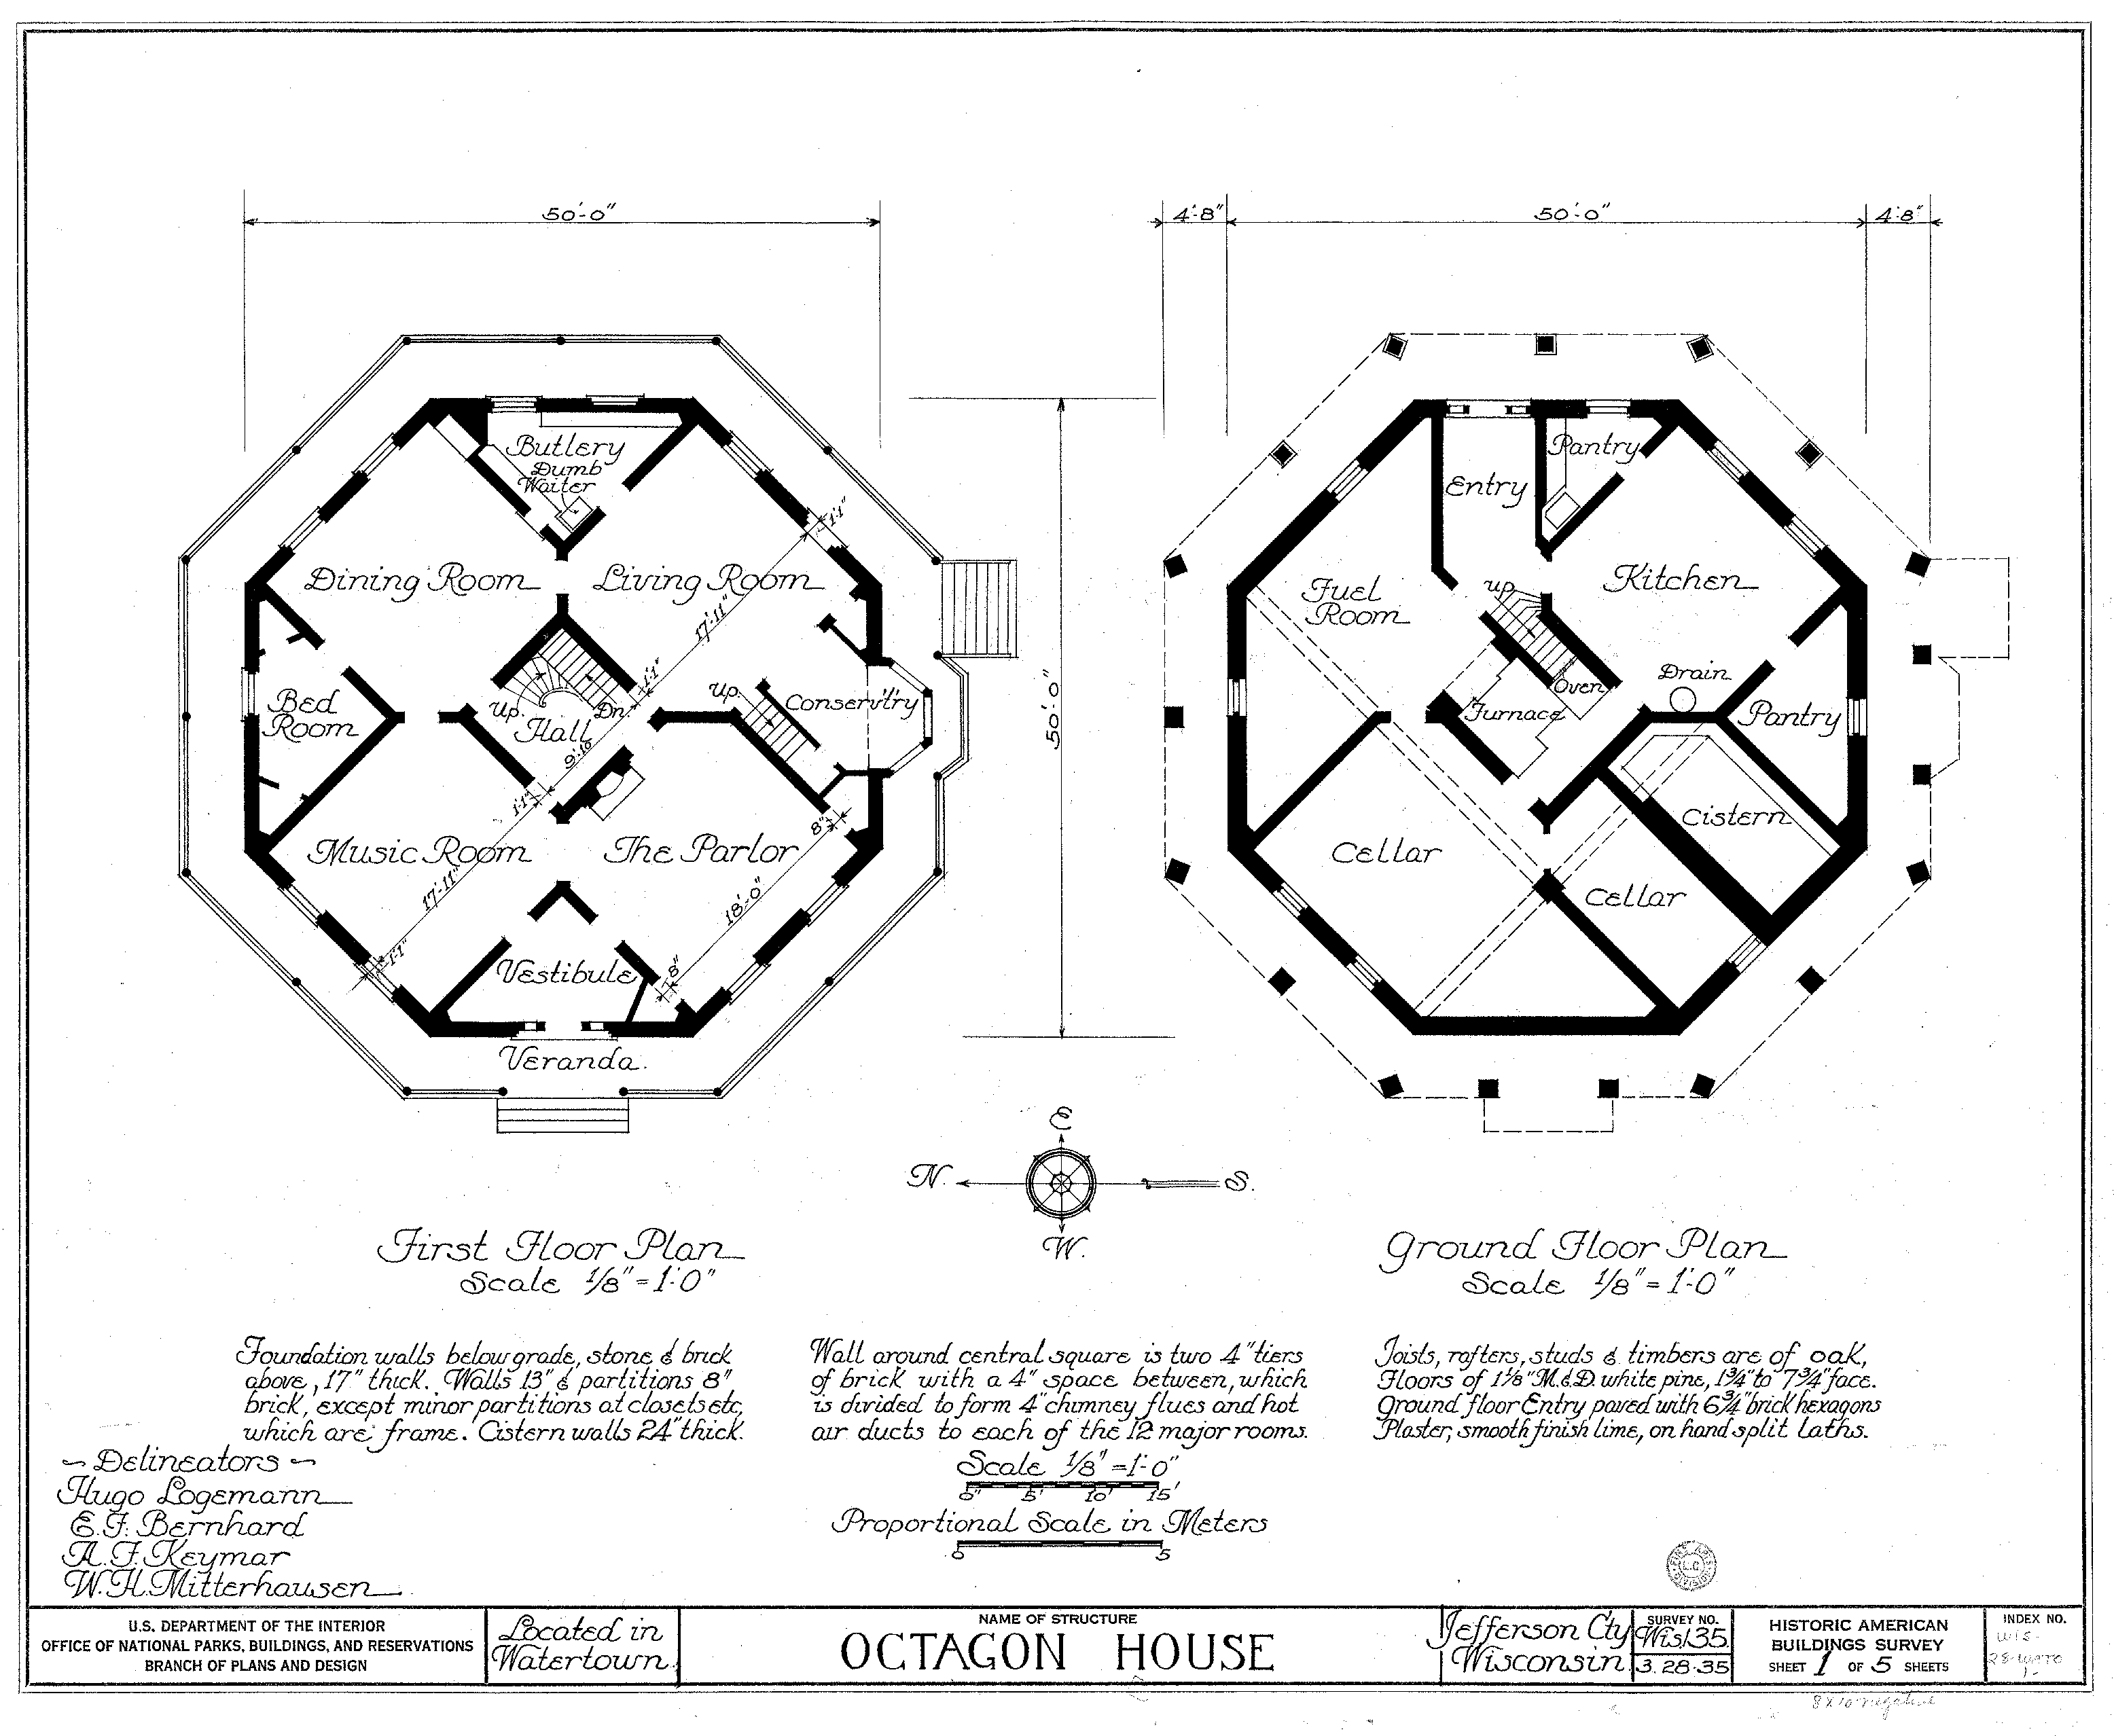 Description watertown octagon house-plans